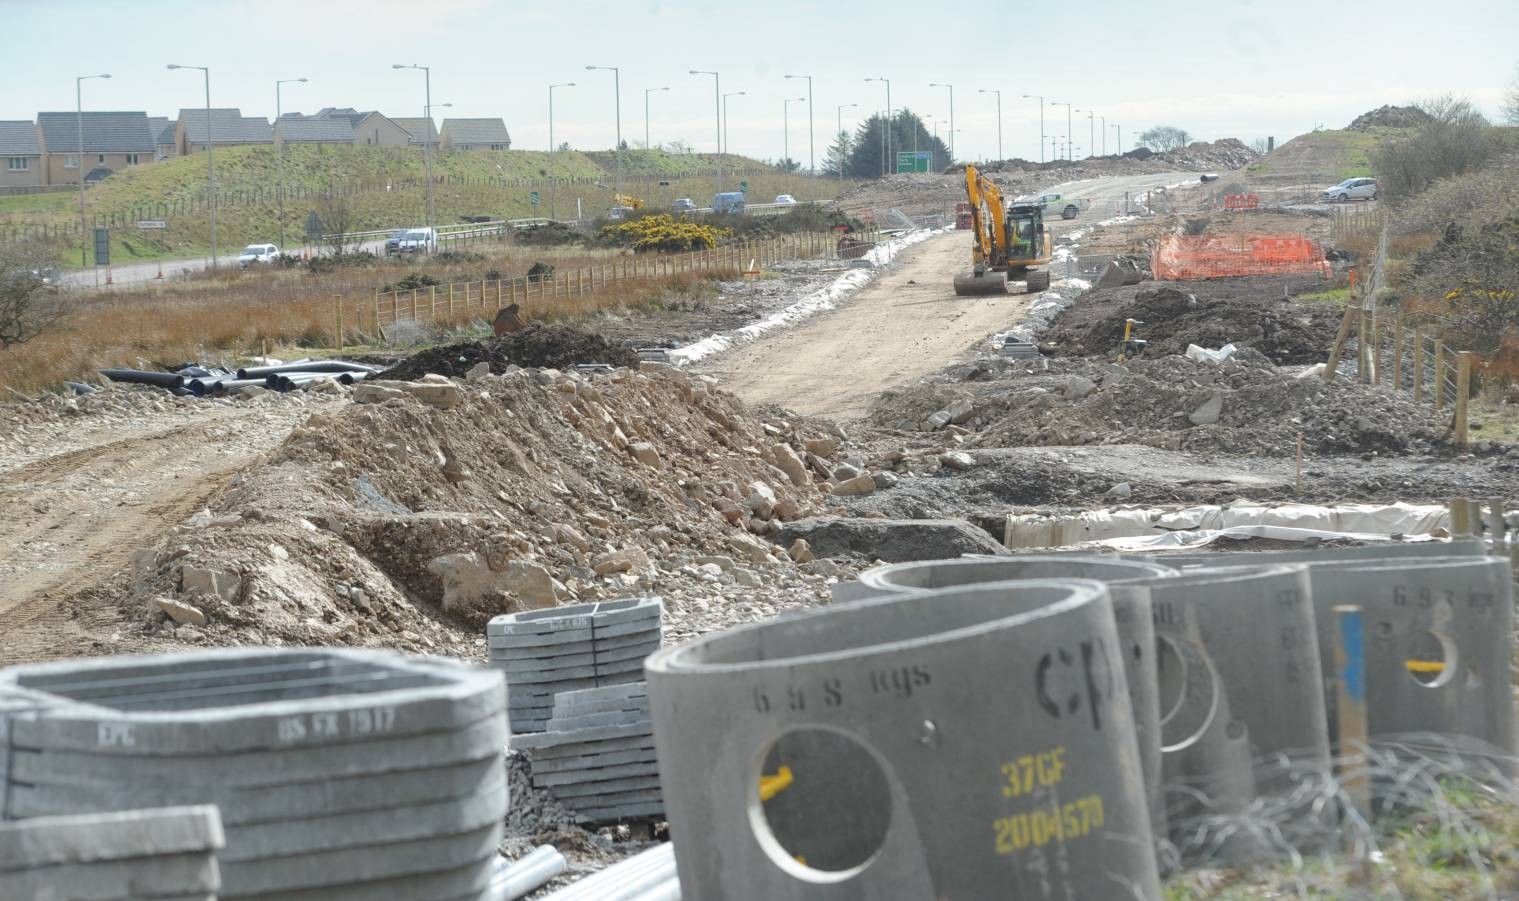 The AWPR  site just before the Charleston flyover on the A90.